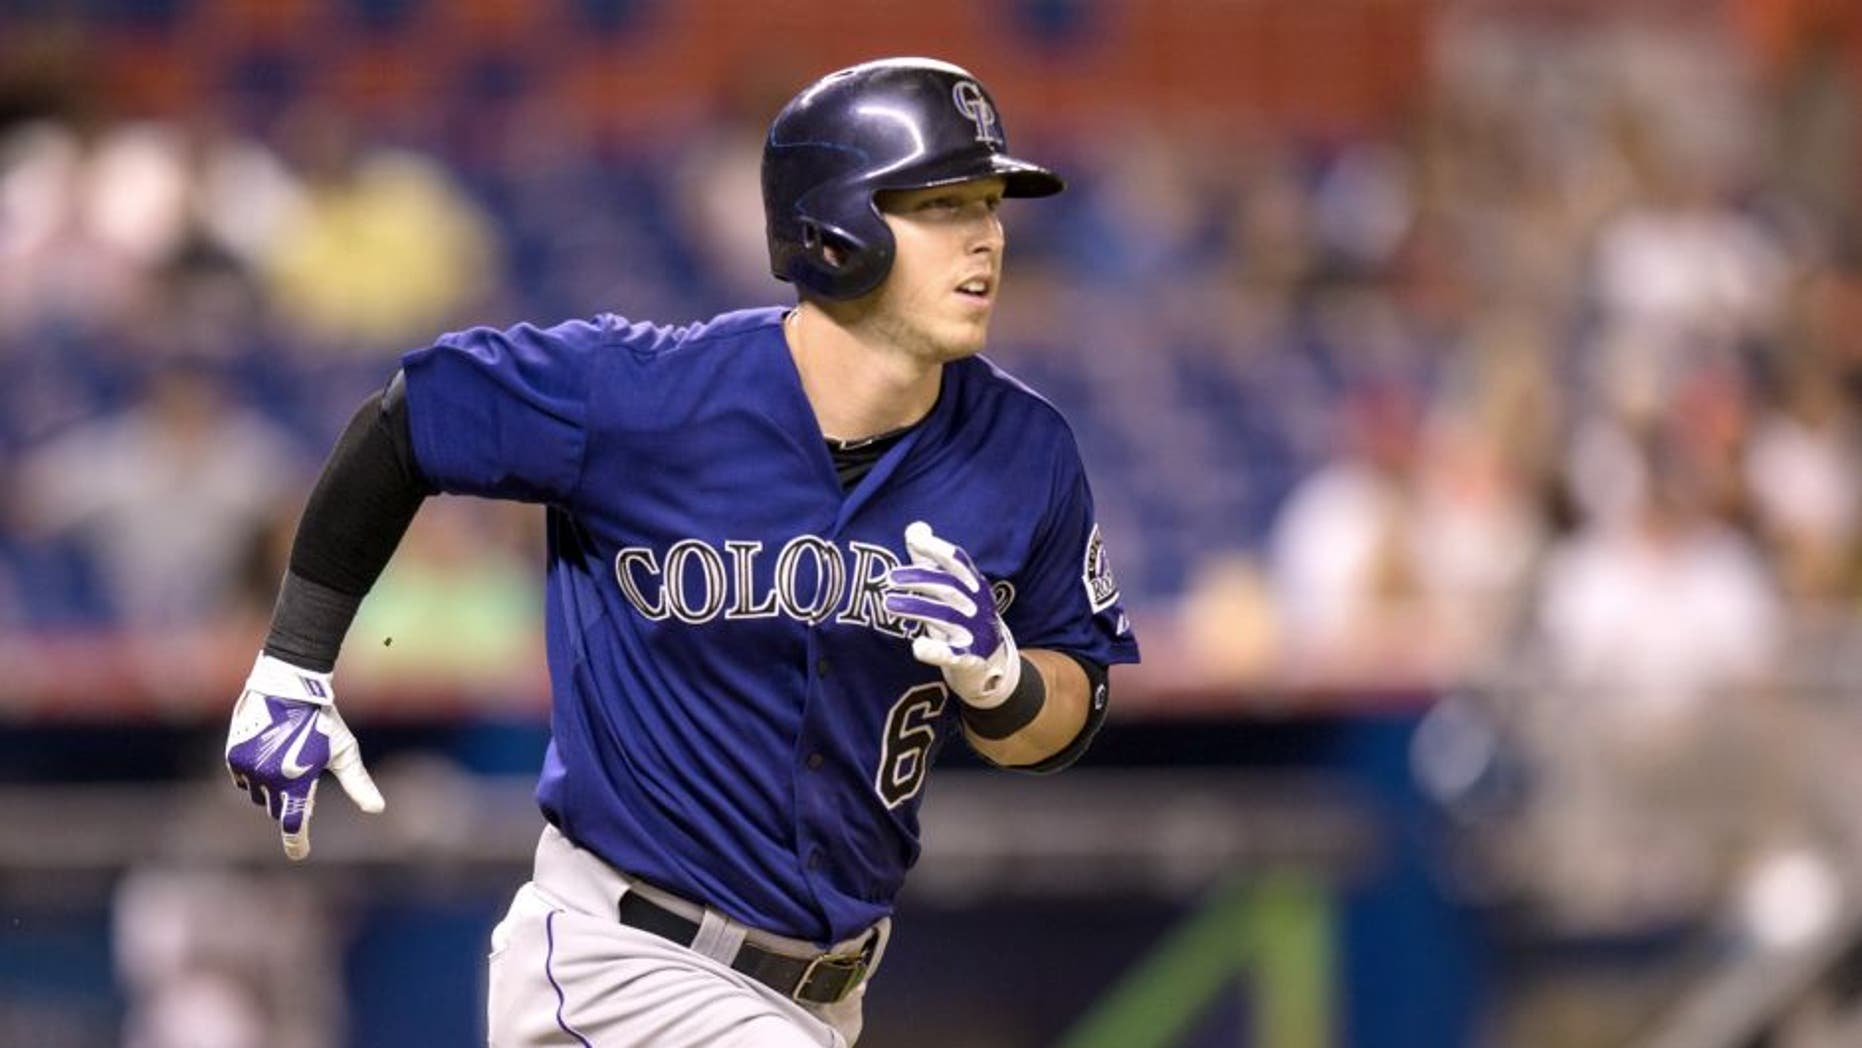 MIAMI, FL - JUNE 11: Corey Dickerson #6 of the Colorado Rockies runs to first base during the game against the Miami Marlins at Marlins Park on June 11, 2015 in Miami, Florida. (Photo by Rob Foldy/Getty Images)